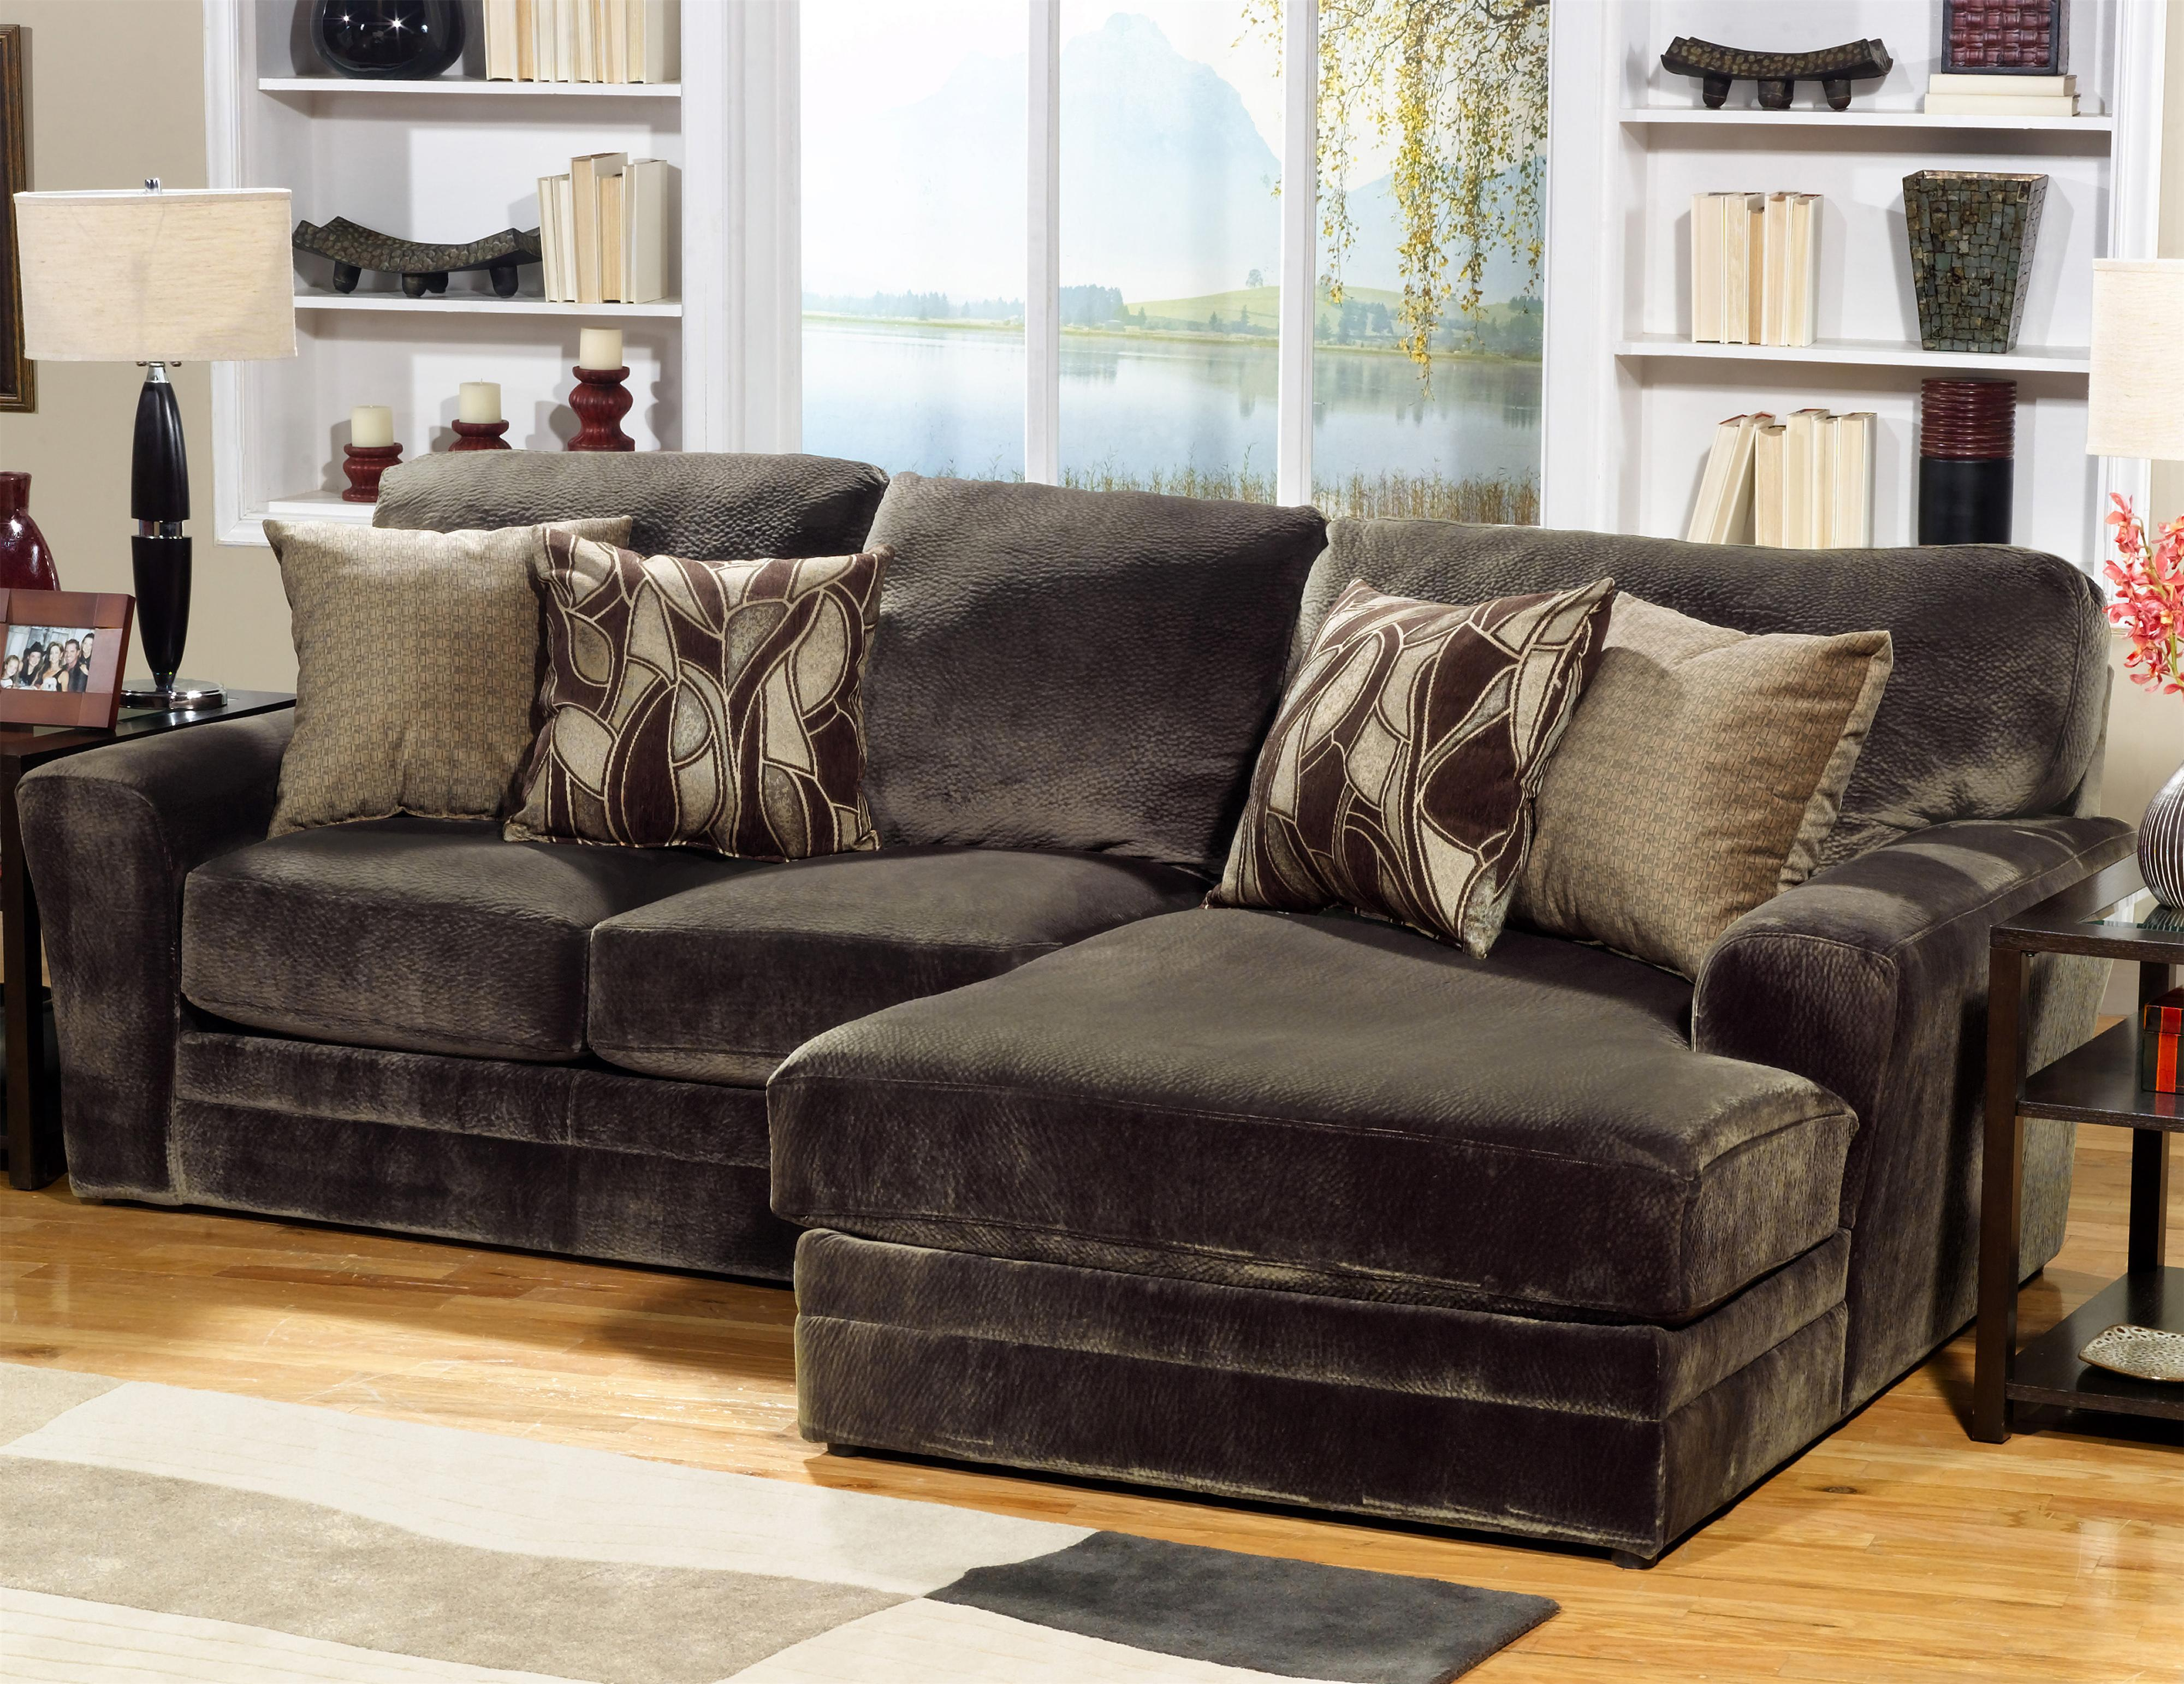 2 piece sectional sofa with rsf chaise by jackson for Alexander sectional sofa chaise